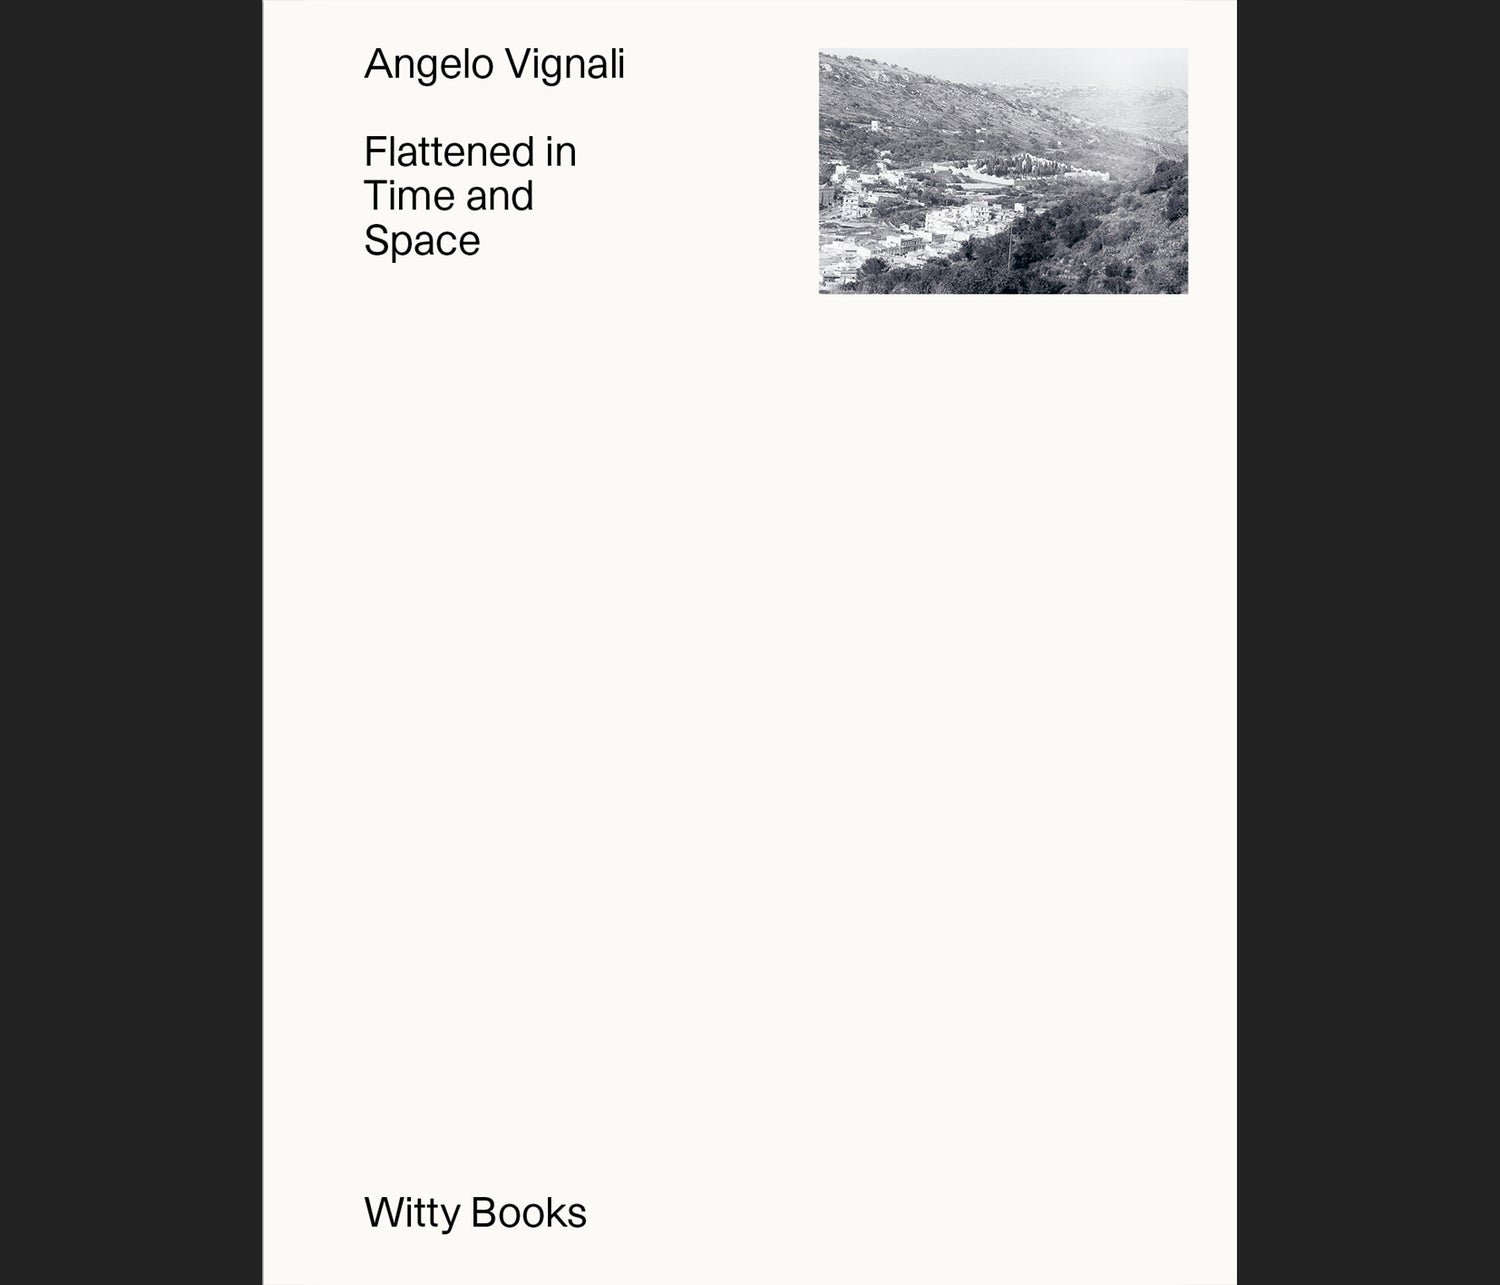 Flattened in Tme and Space - Angelo Vignali